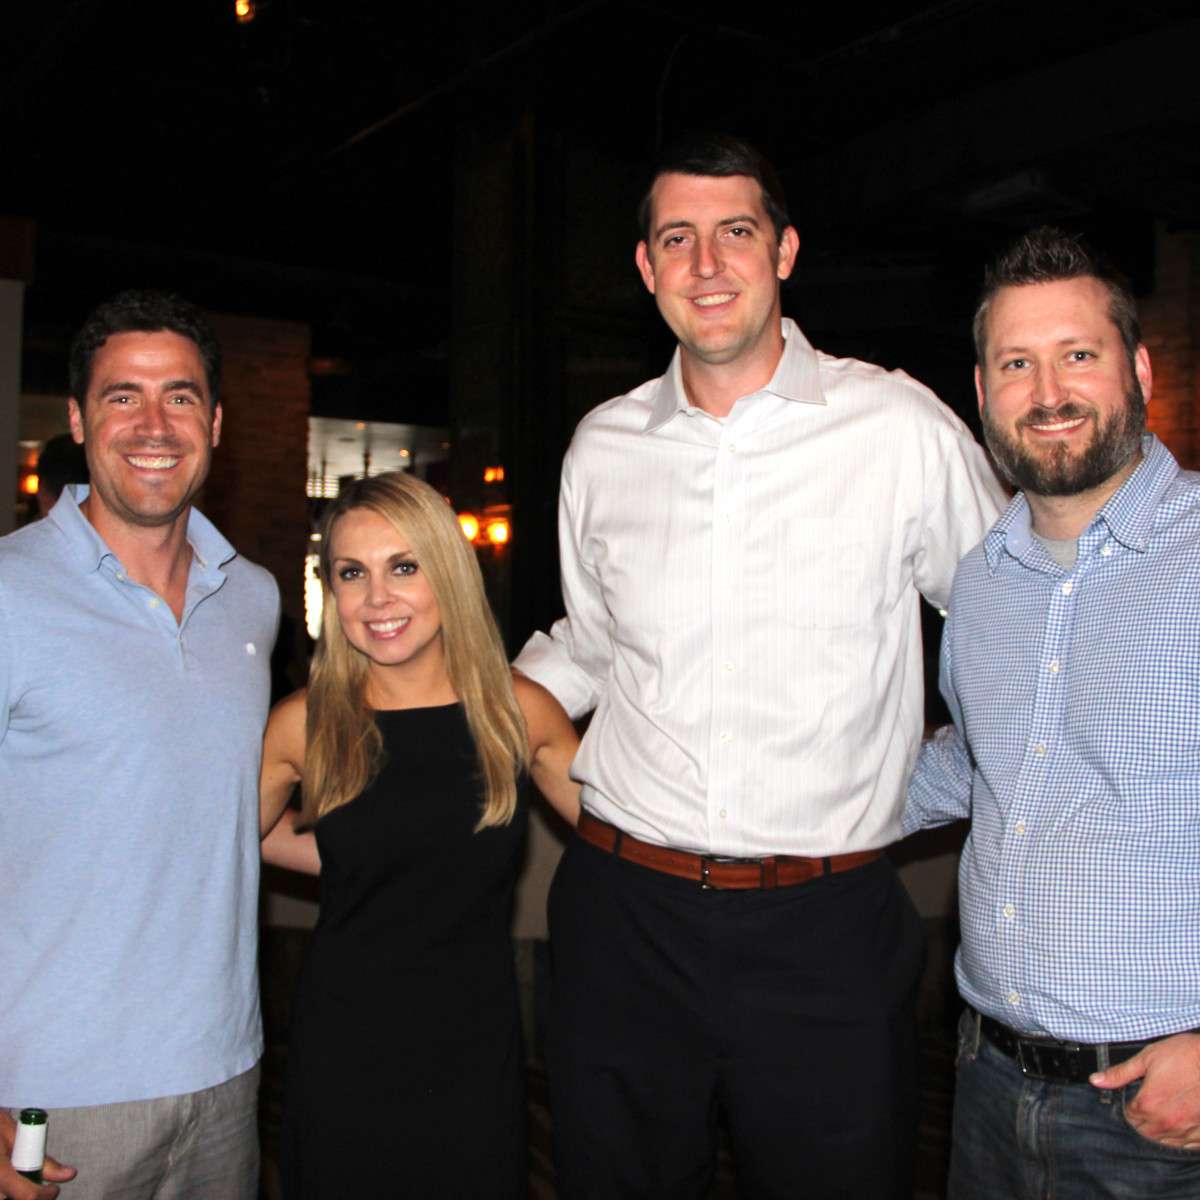 Houston, Friends of Depelchin Back to School Happy Hour, August 2015, Ben Sachs, Natalie Higden, Robert Tinnell, Paxton Rogers